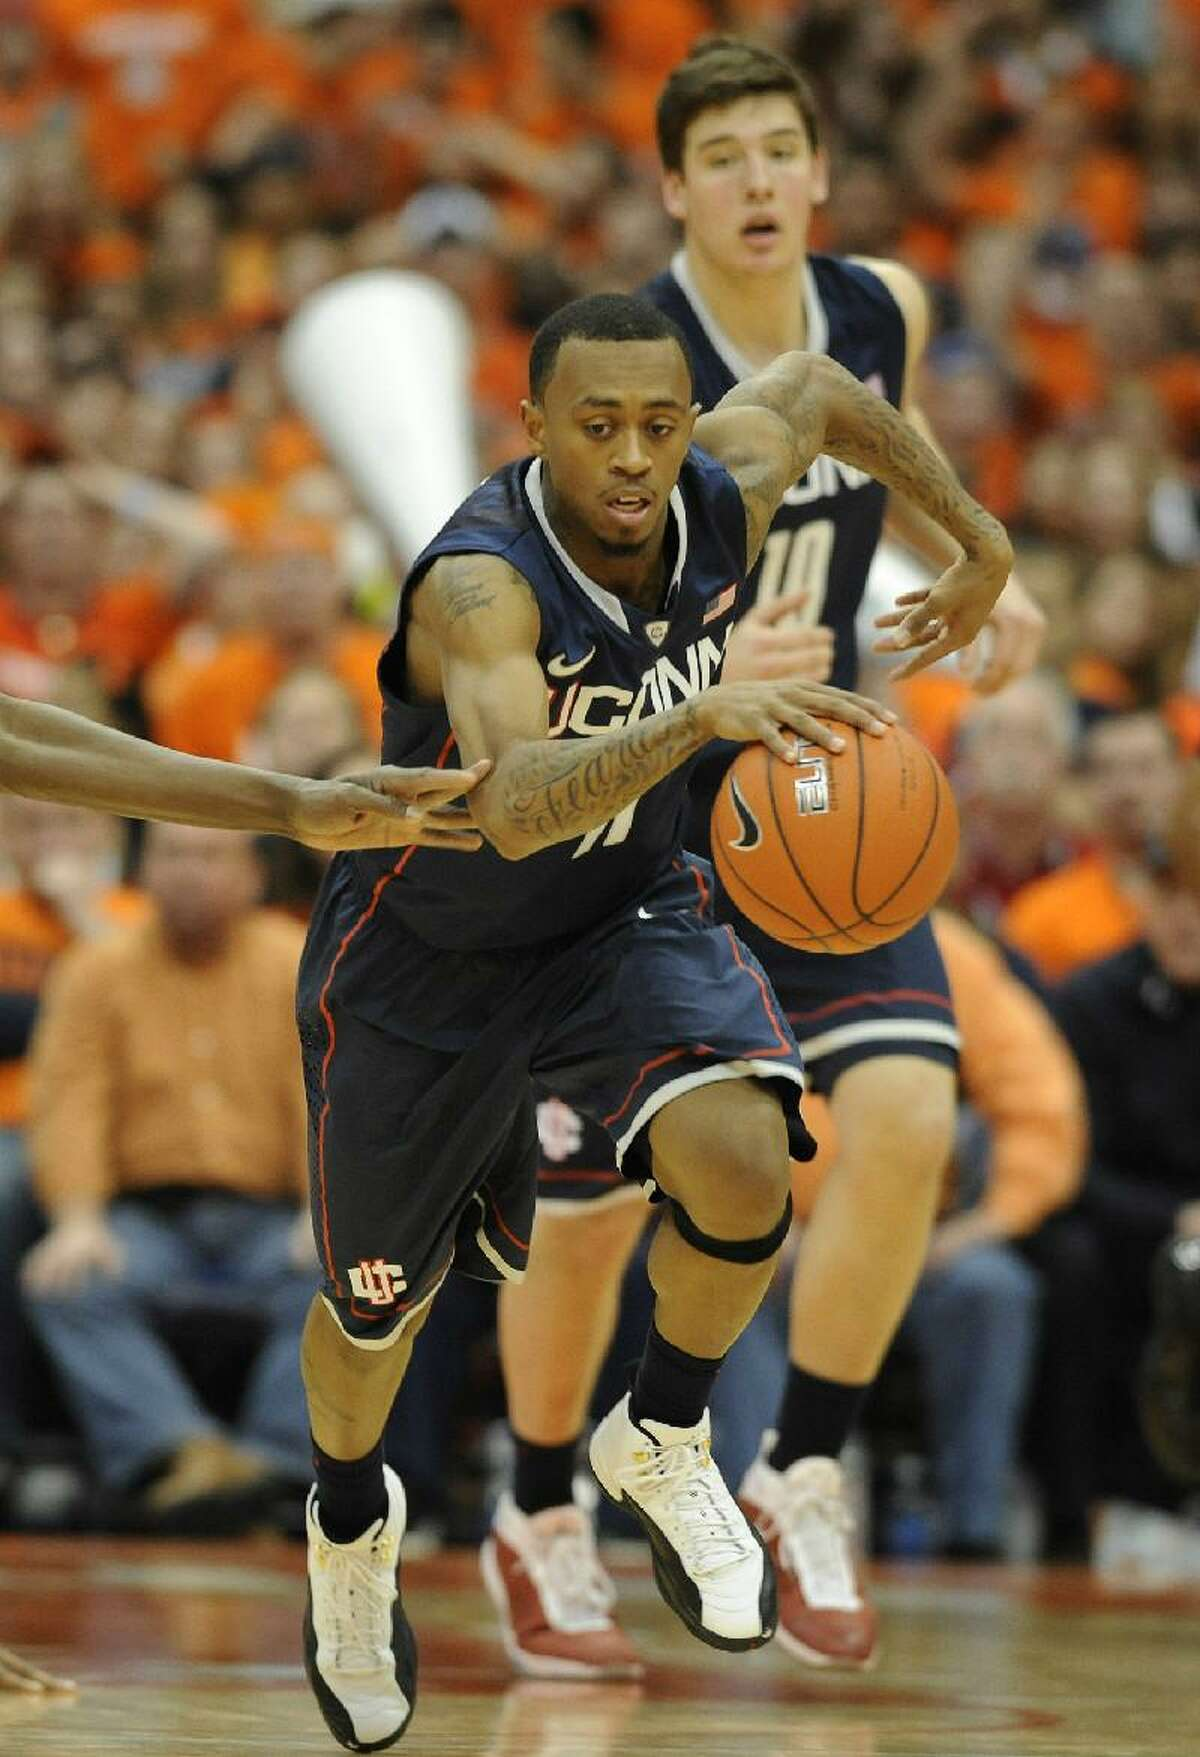 ASSOCIATED PRESS Connecticut's Ryan Boatright dribbles down the court during Saturday's game against Syracuse at the Carrier Dome in Syracuse, N.Y. The Huskies lost 85-67.